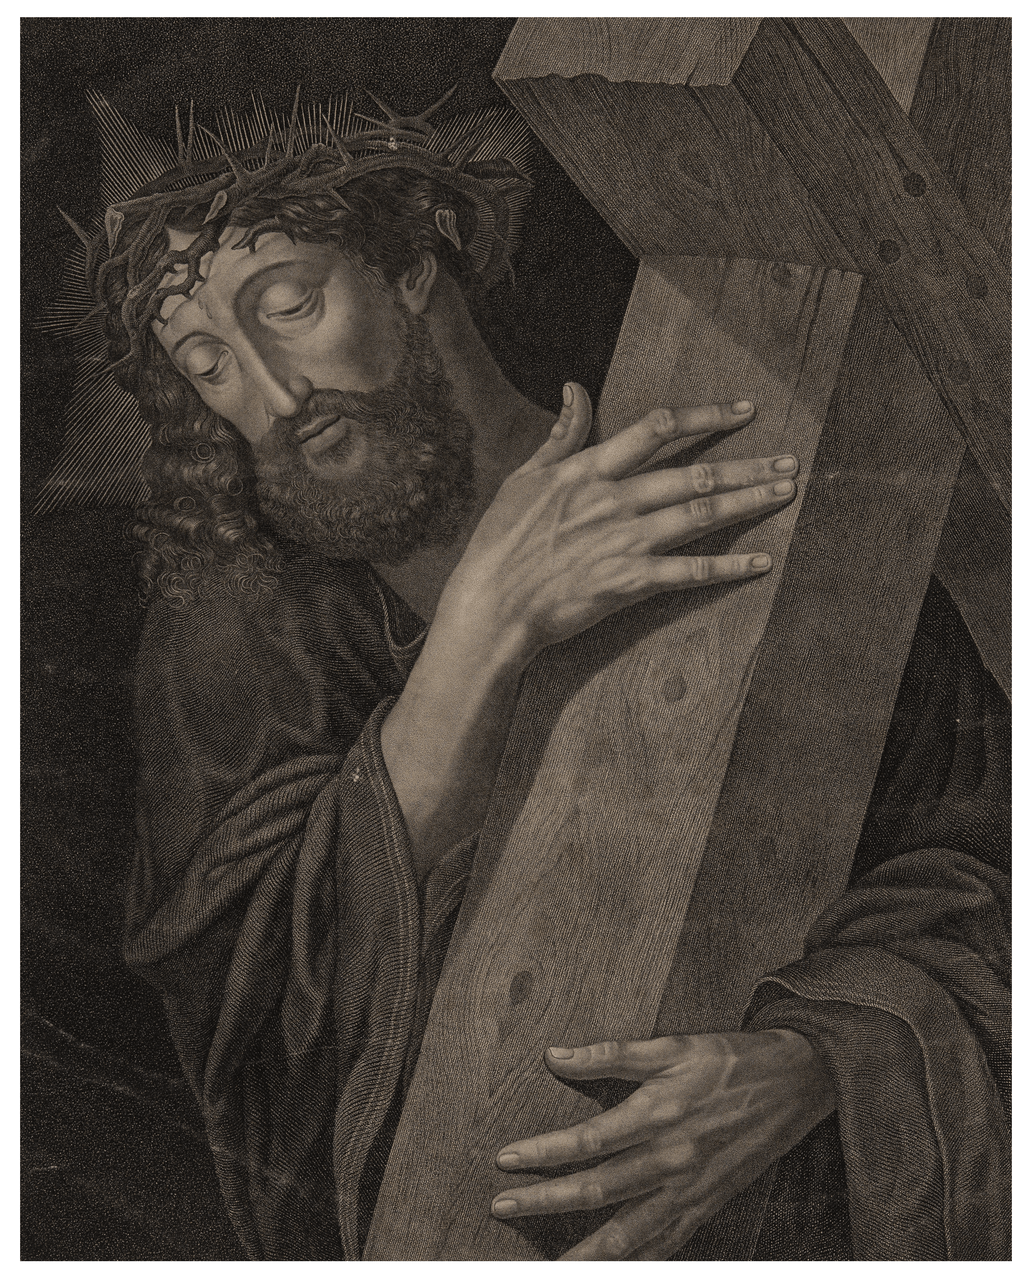 An Early German 19th Century Engraving Of Da Vinci's Christ By Albert Reindel